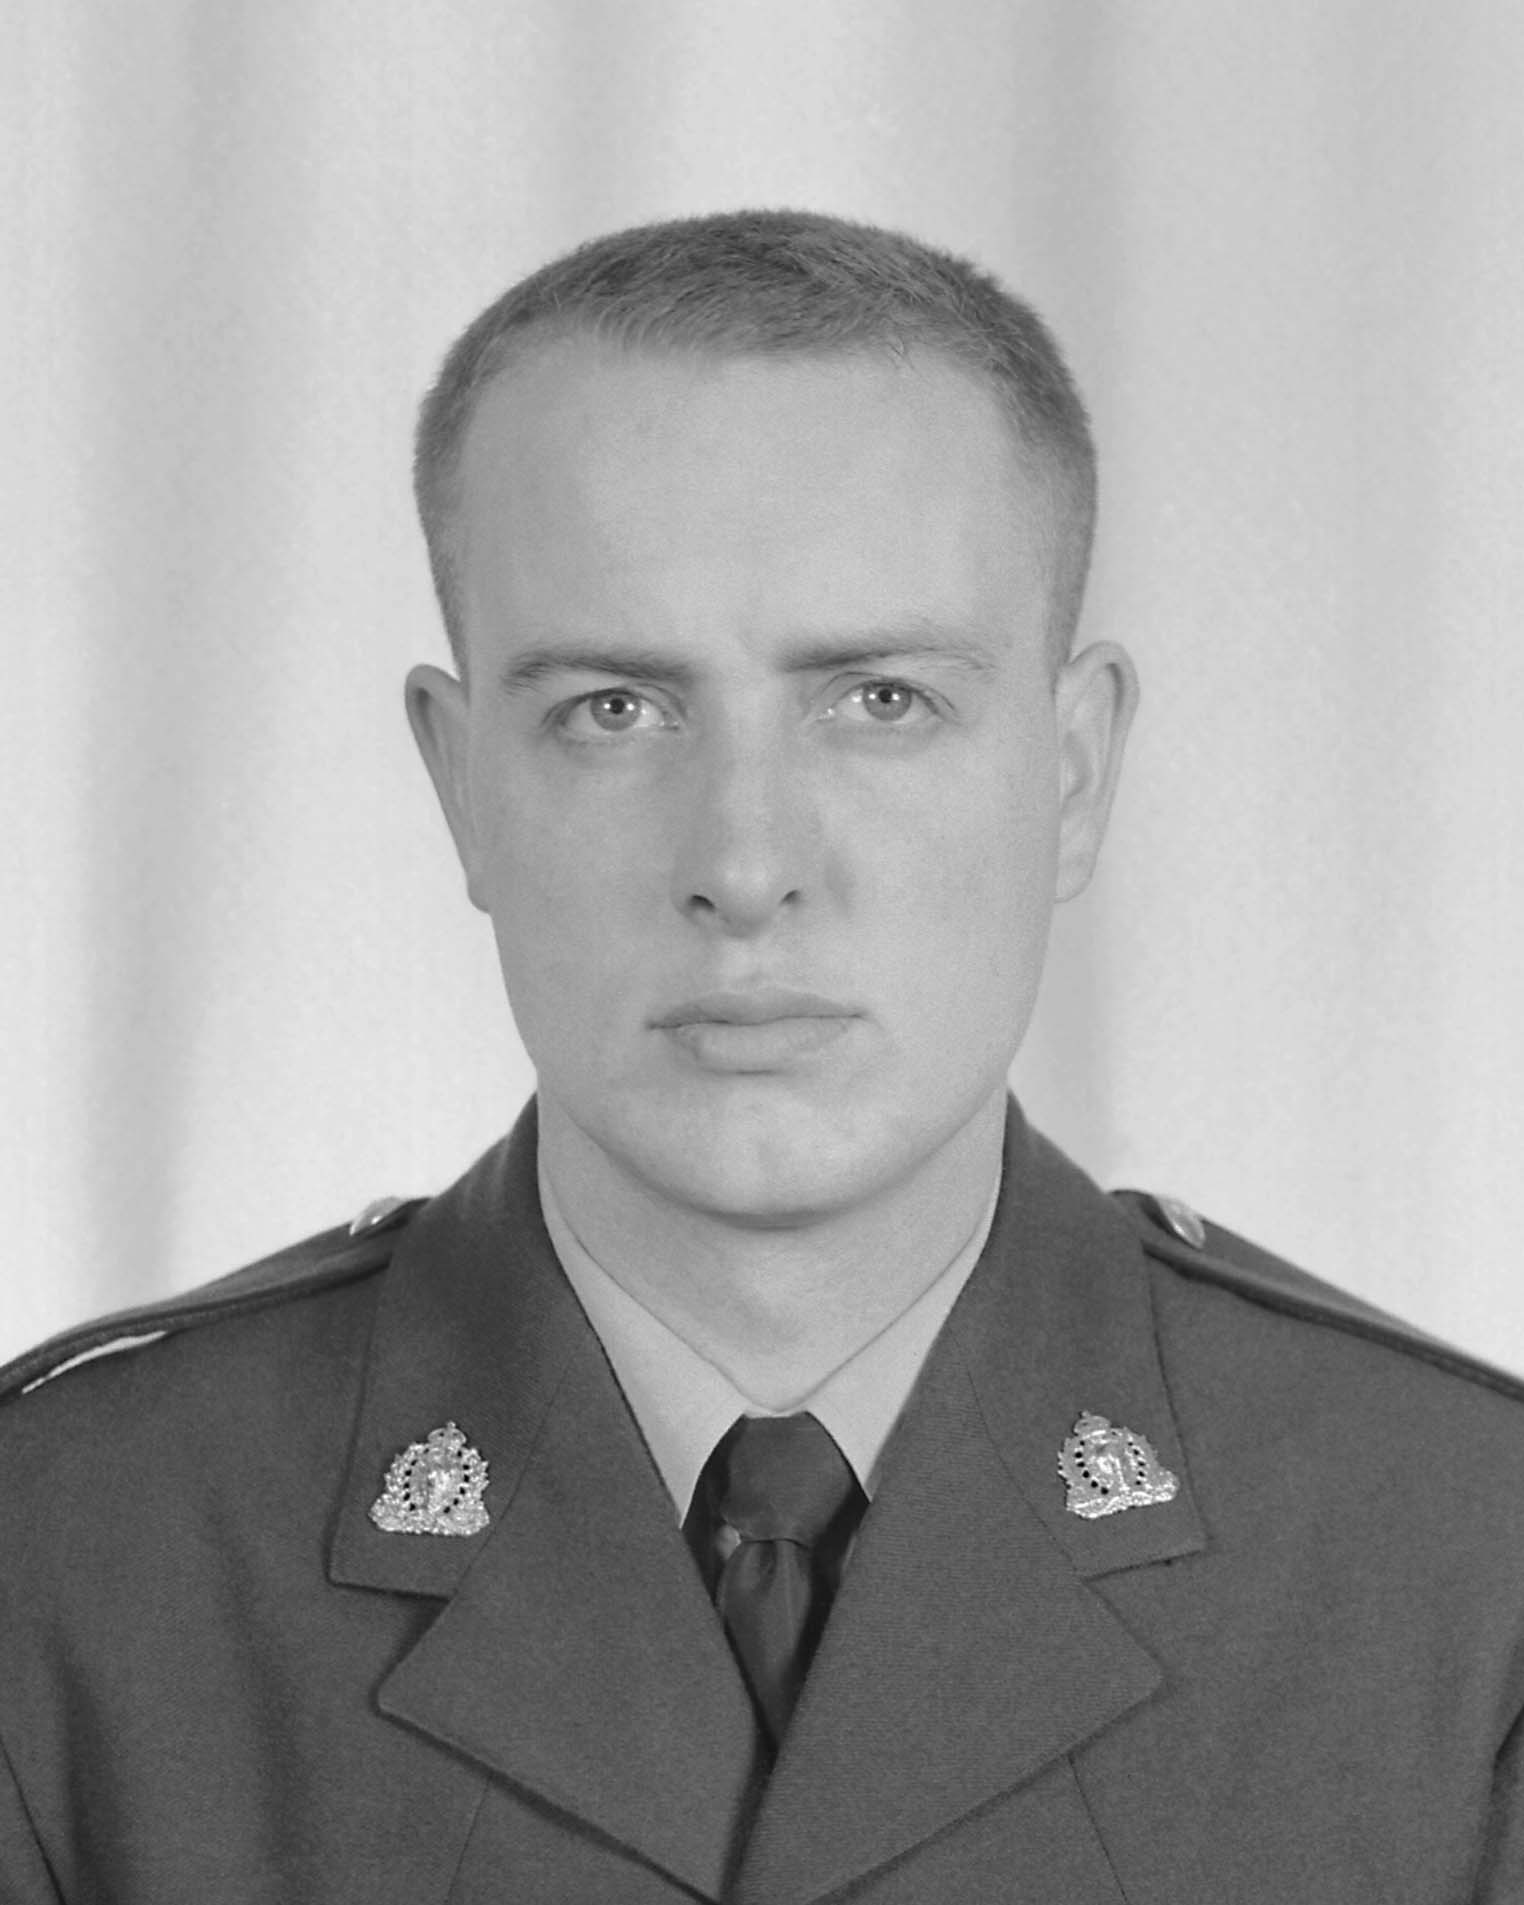 Second Class Constable Glen Frederick Farough– © Her Majesty the Queen in Right of Canada as represented by the Royal Canadian Mounted Police